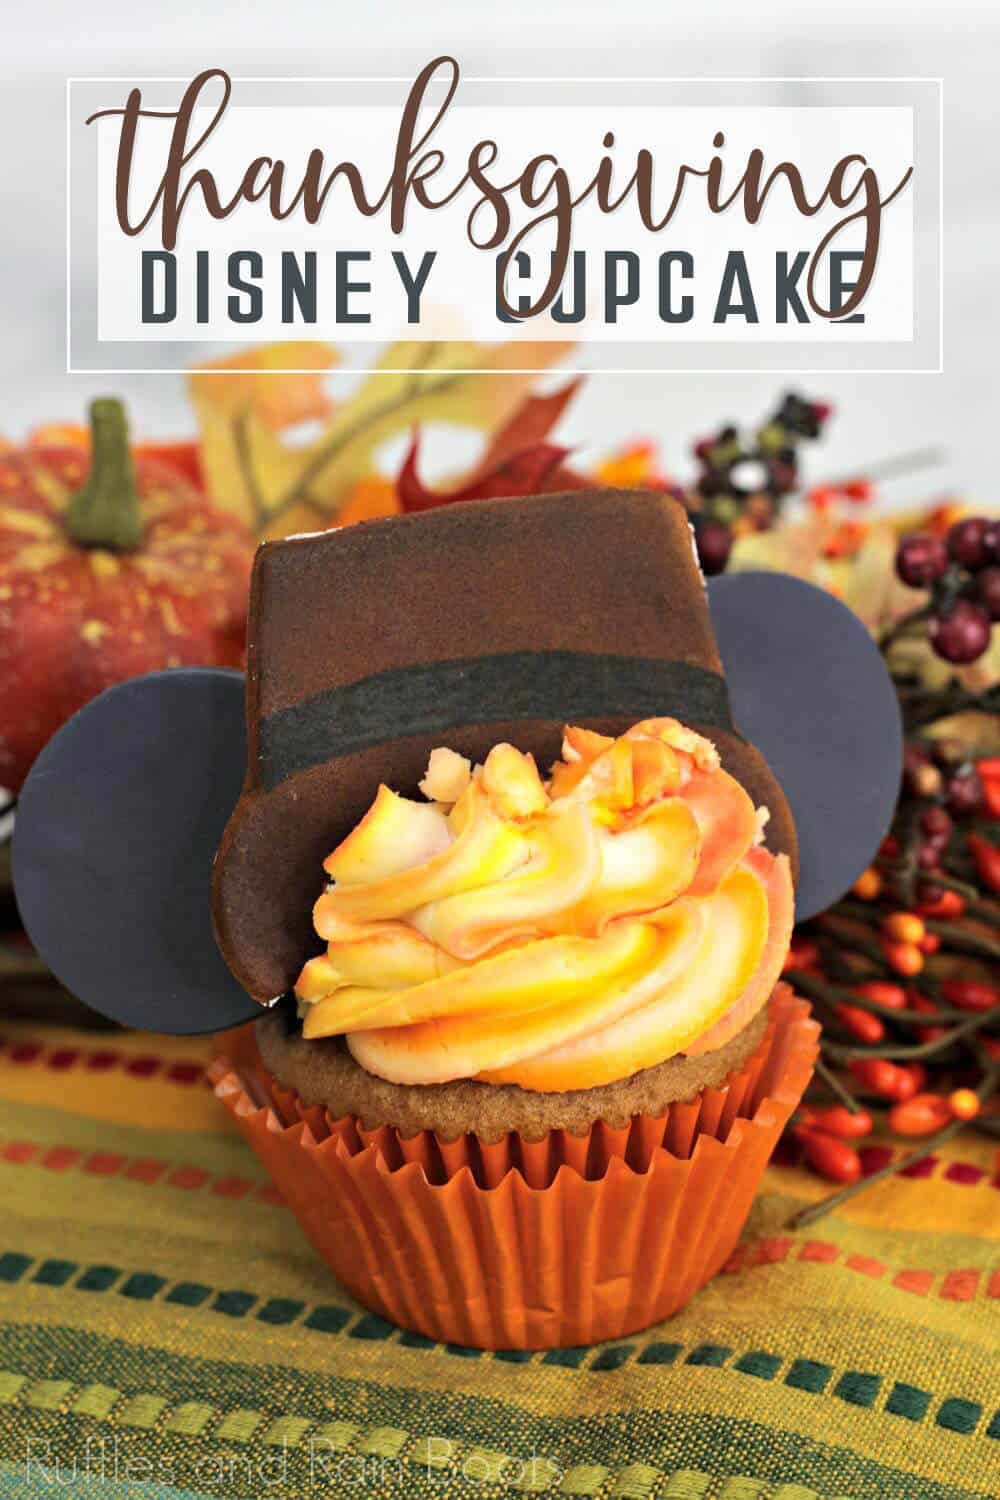 Spiced cake cupcake decorated like Mickey mouse pilgrim for Thanksgiving on napkin with fall pumpkin